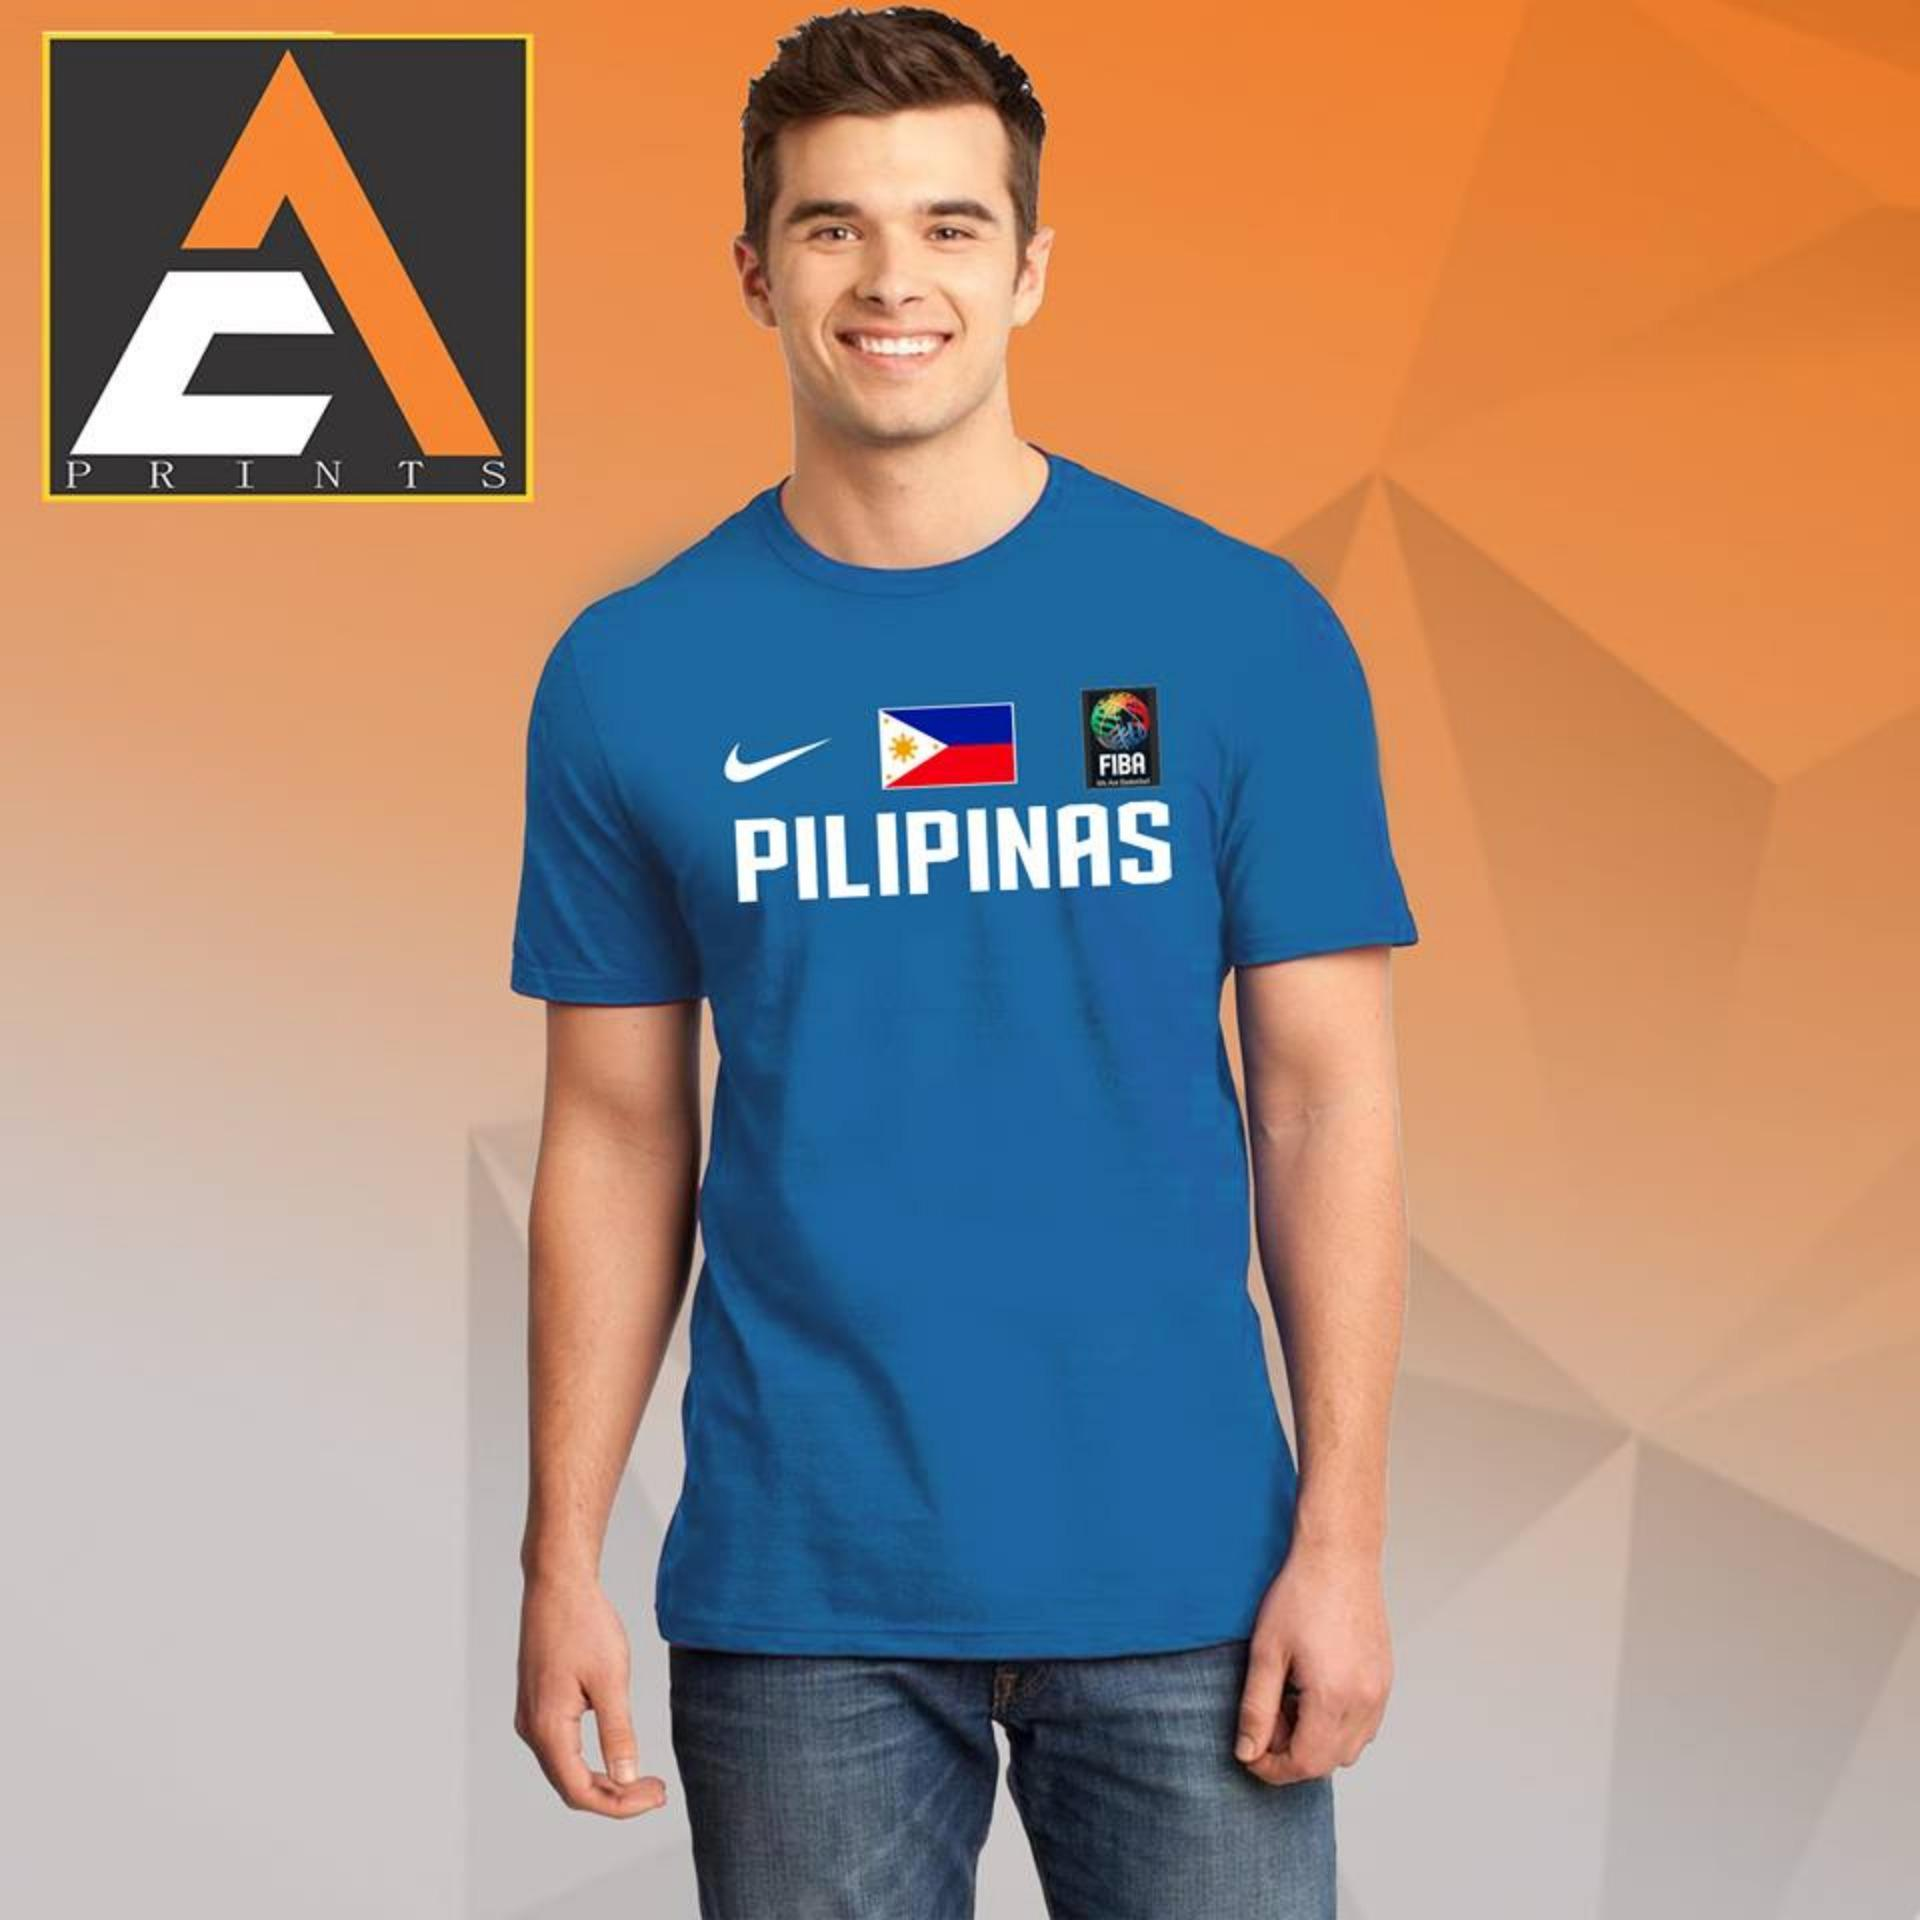 acbb680d5822 Gilas Pilipinas t shirt Basketball Shirt Unisex(Men Women)(Male Female